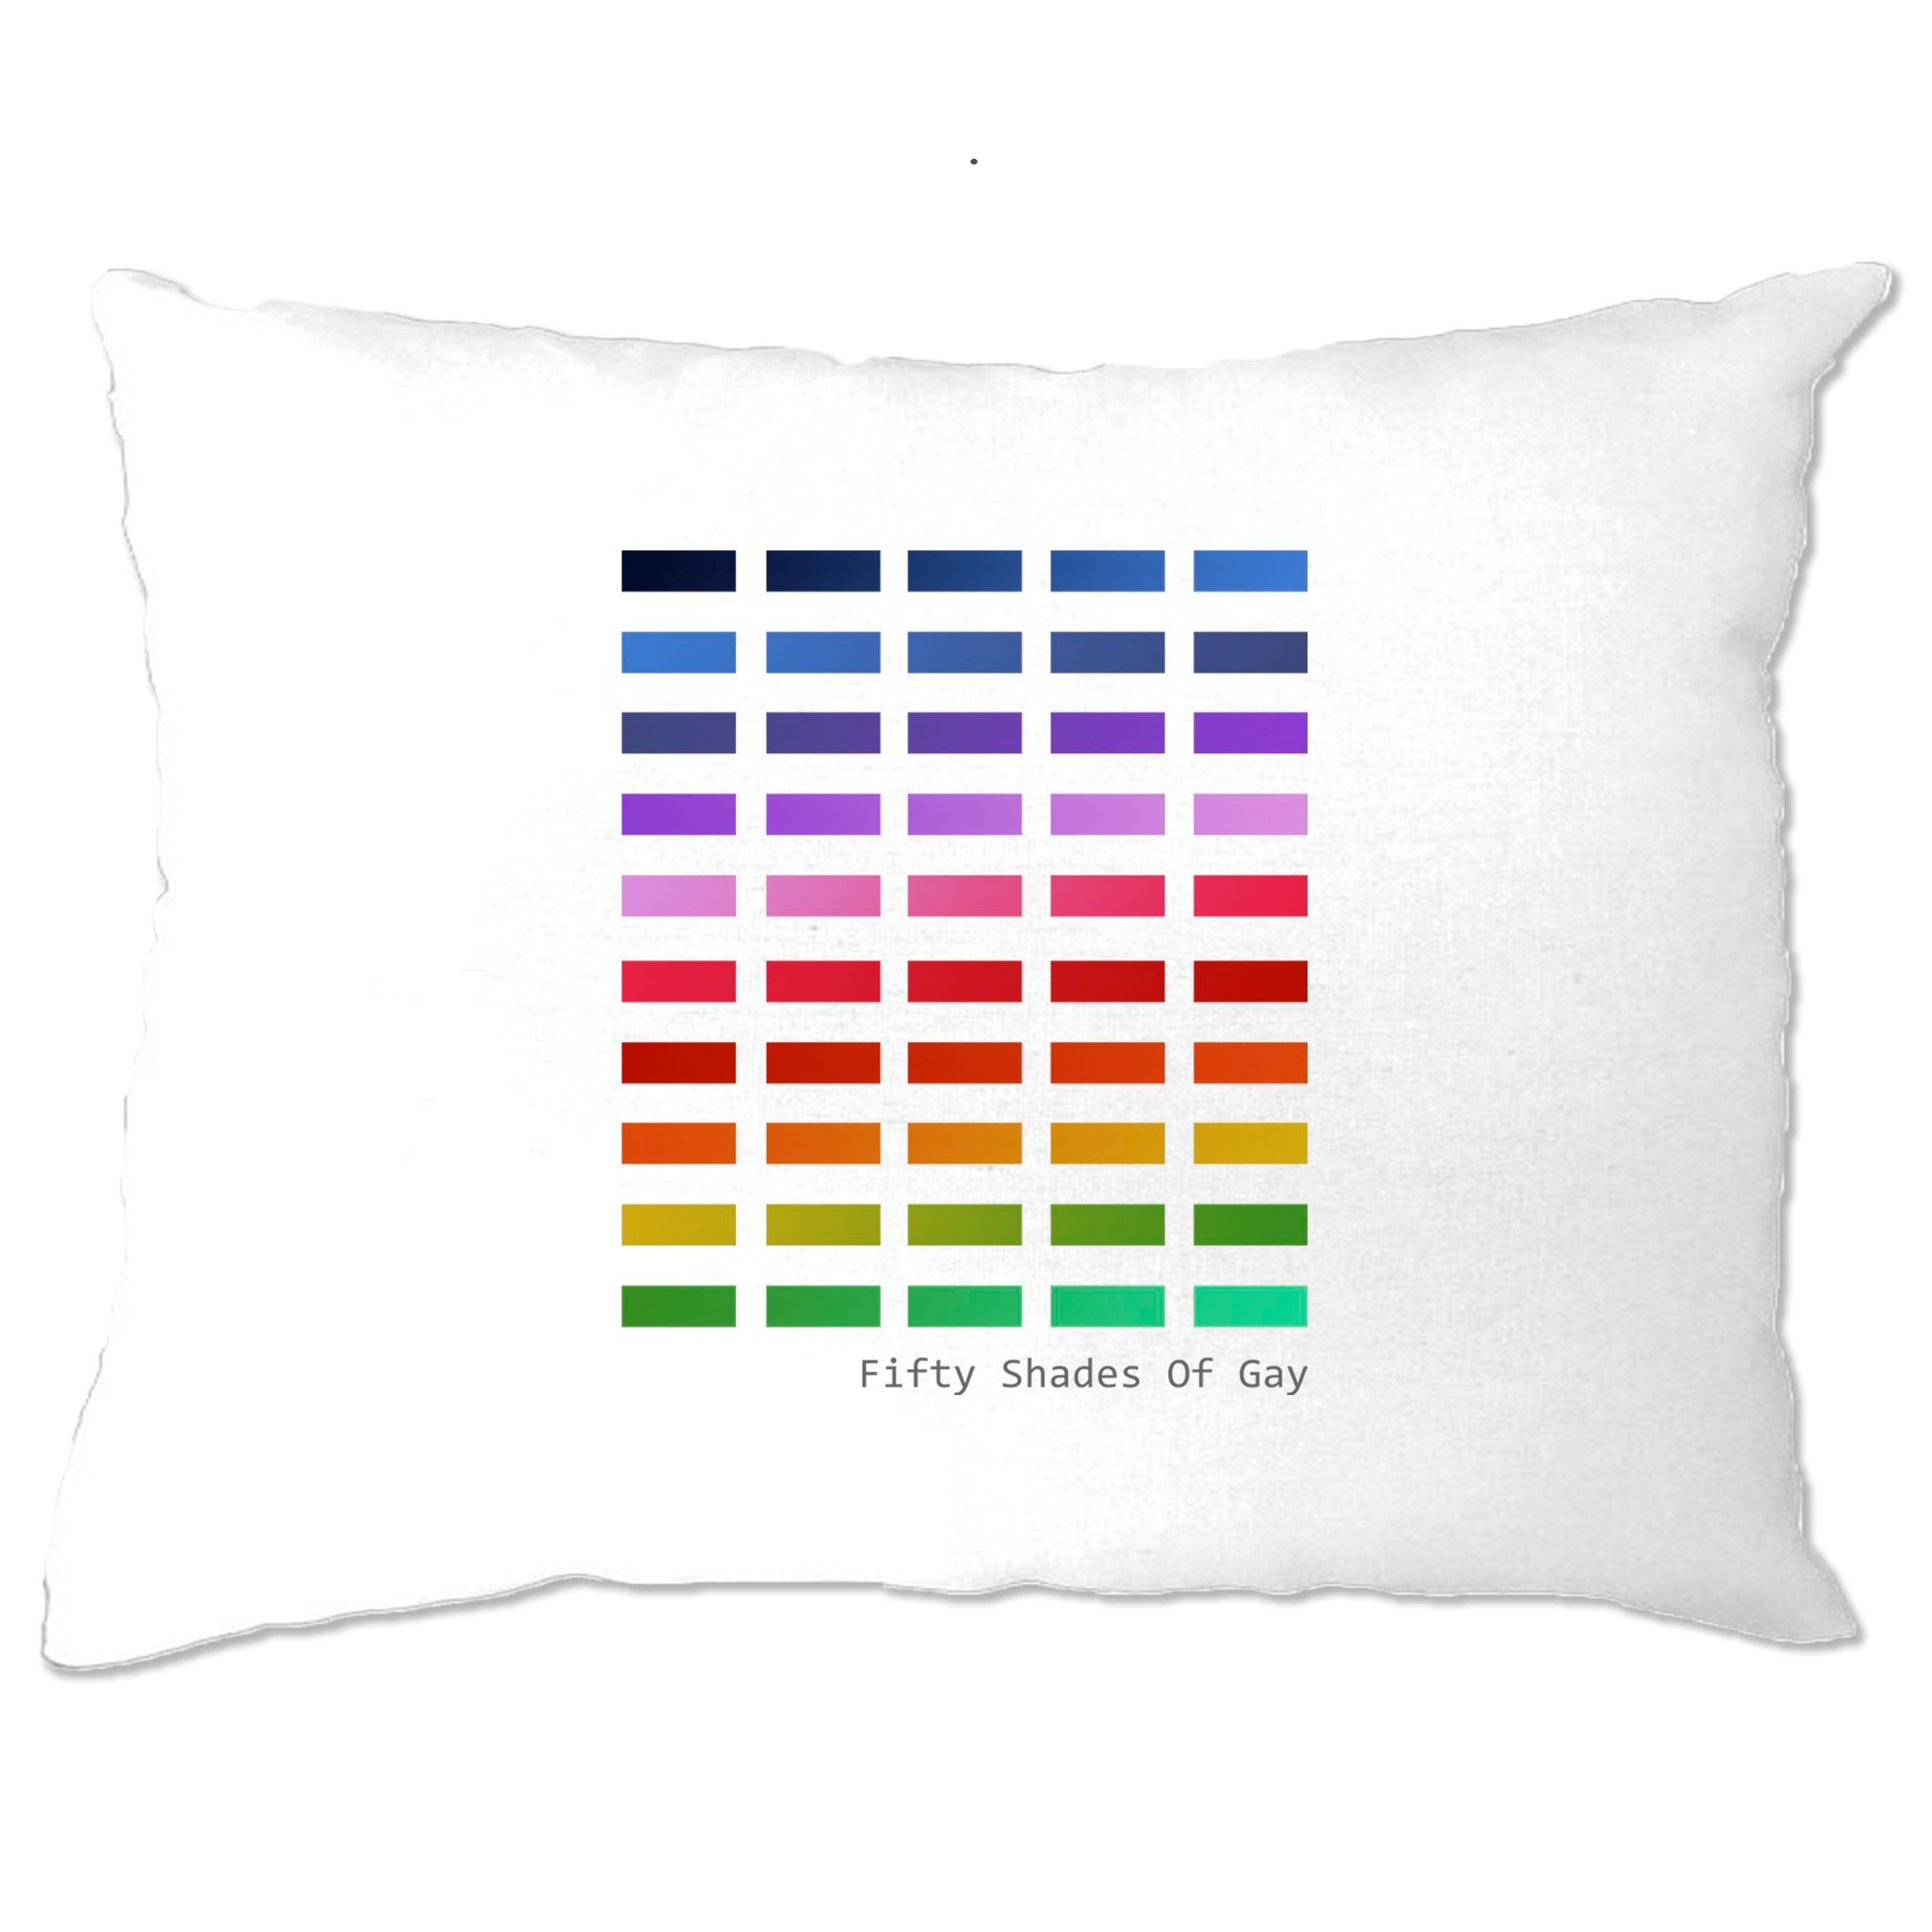 50 Shades Of Gay Pillow Case Rainbow LGBT+ Pride